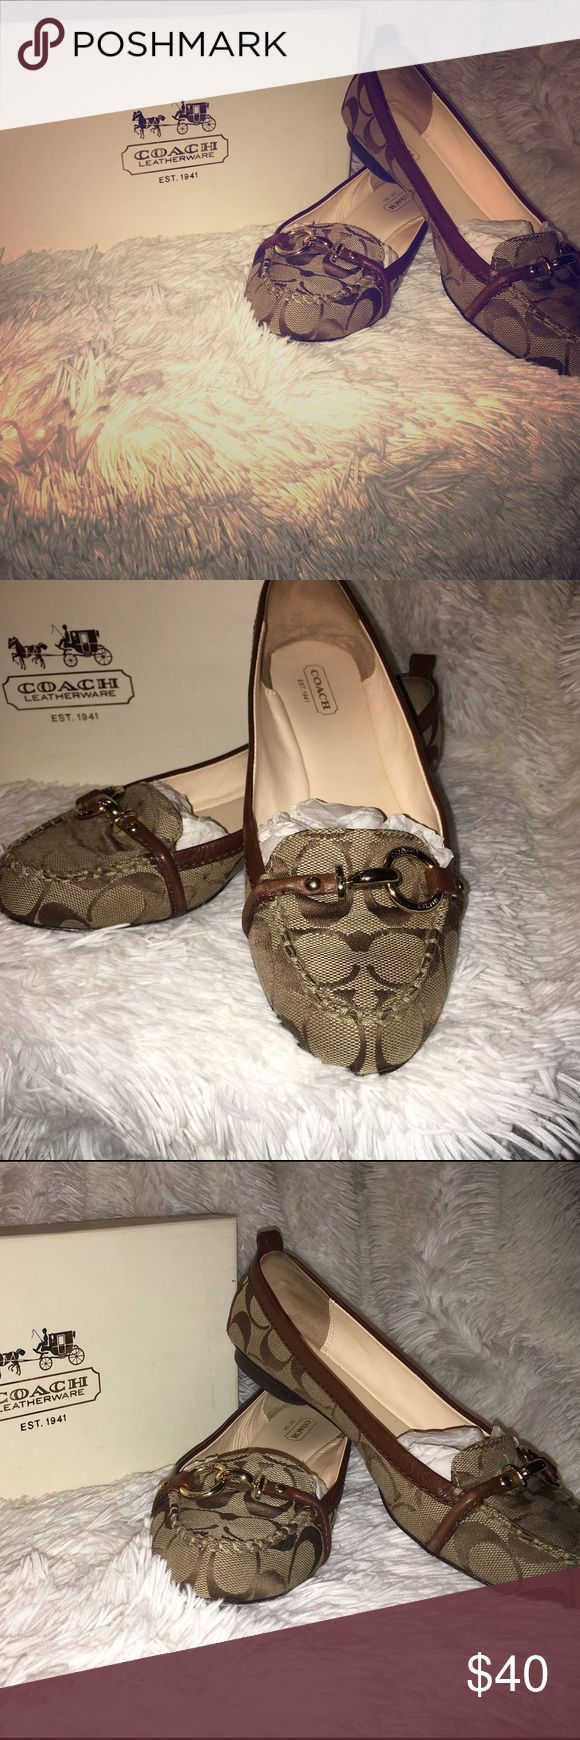 LADIES COACH FLATS COACH flats with metal buckle, barely worn like new!!!! Coach Shoes Flats & Loafers